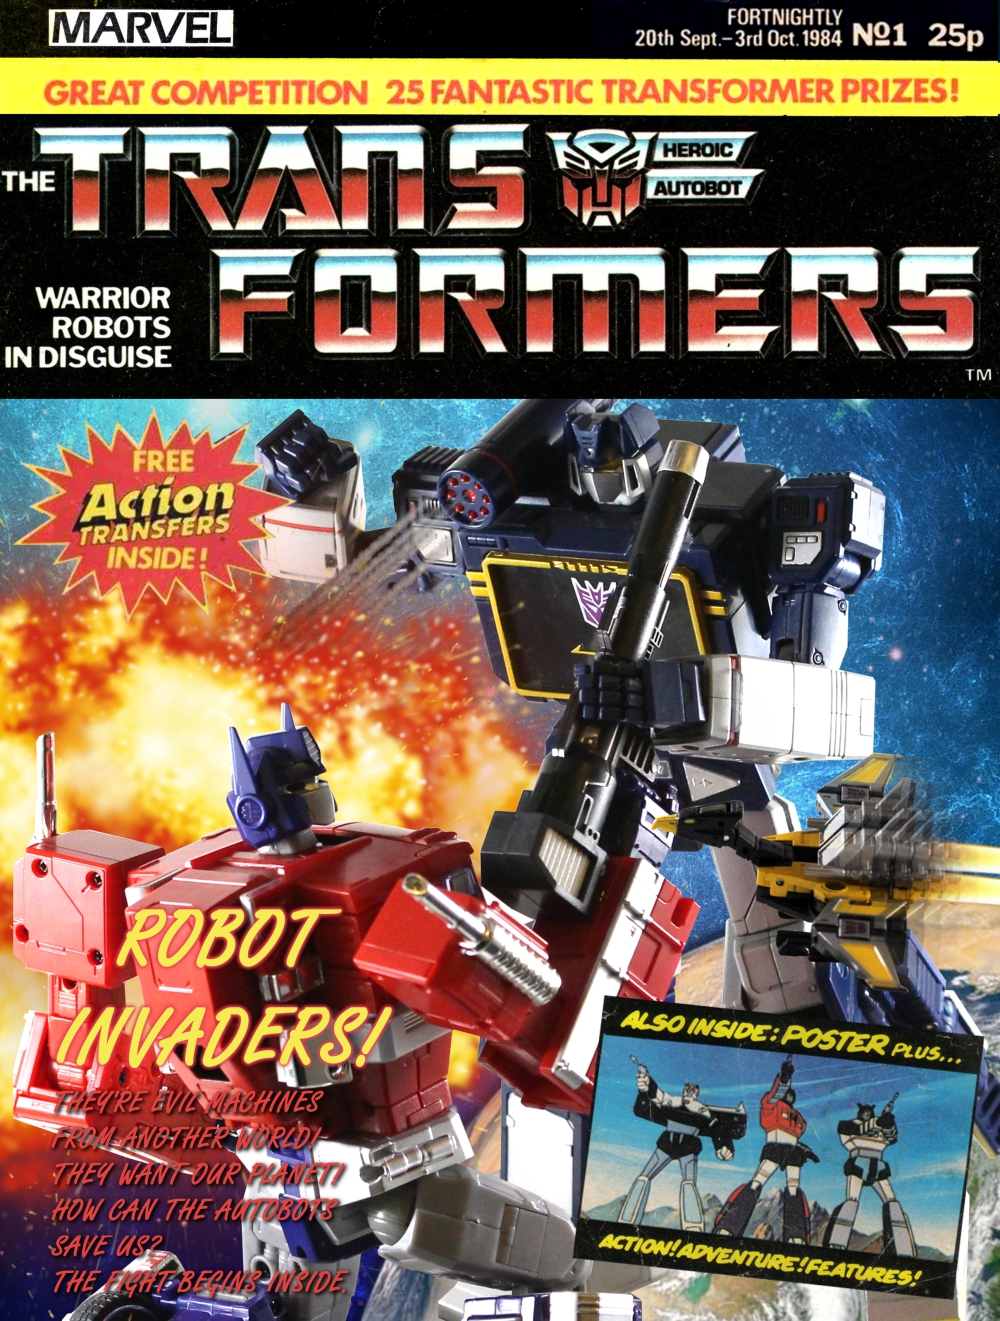 Transformers UK Comic 01 - FULL HD